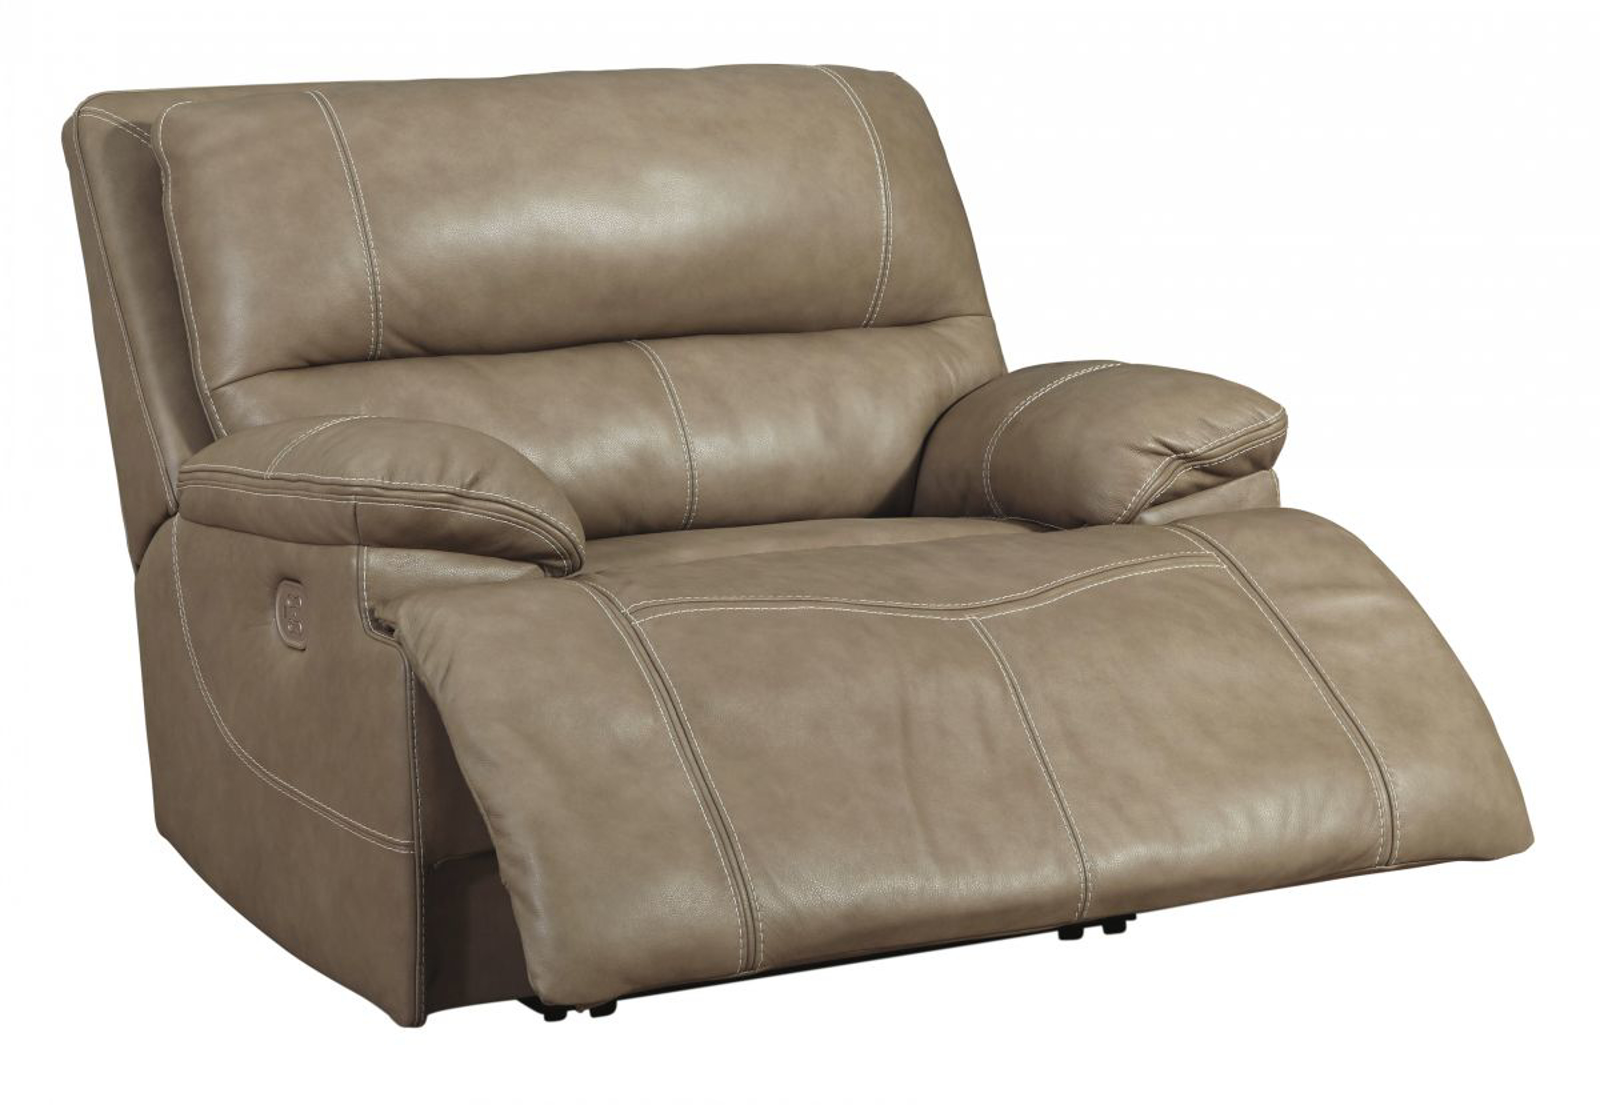 Picture of Ricmen Power Recliner